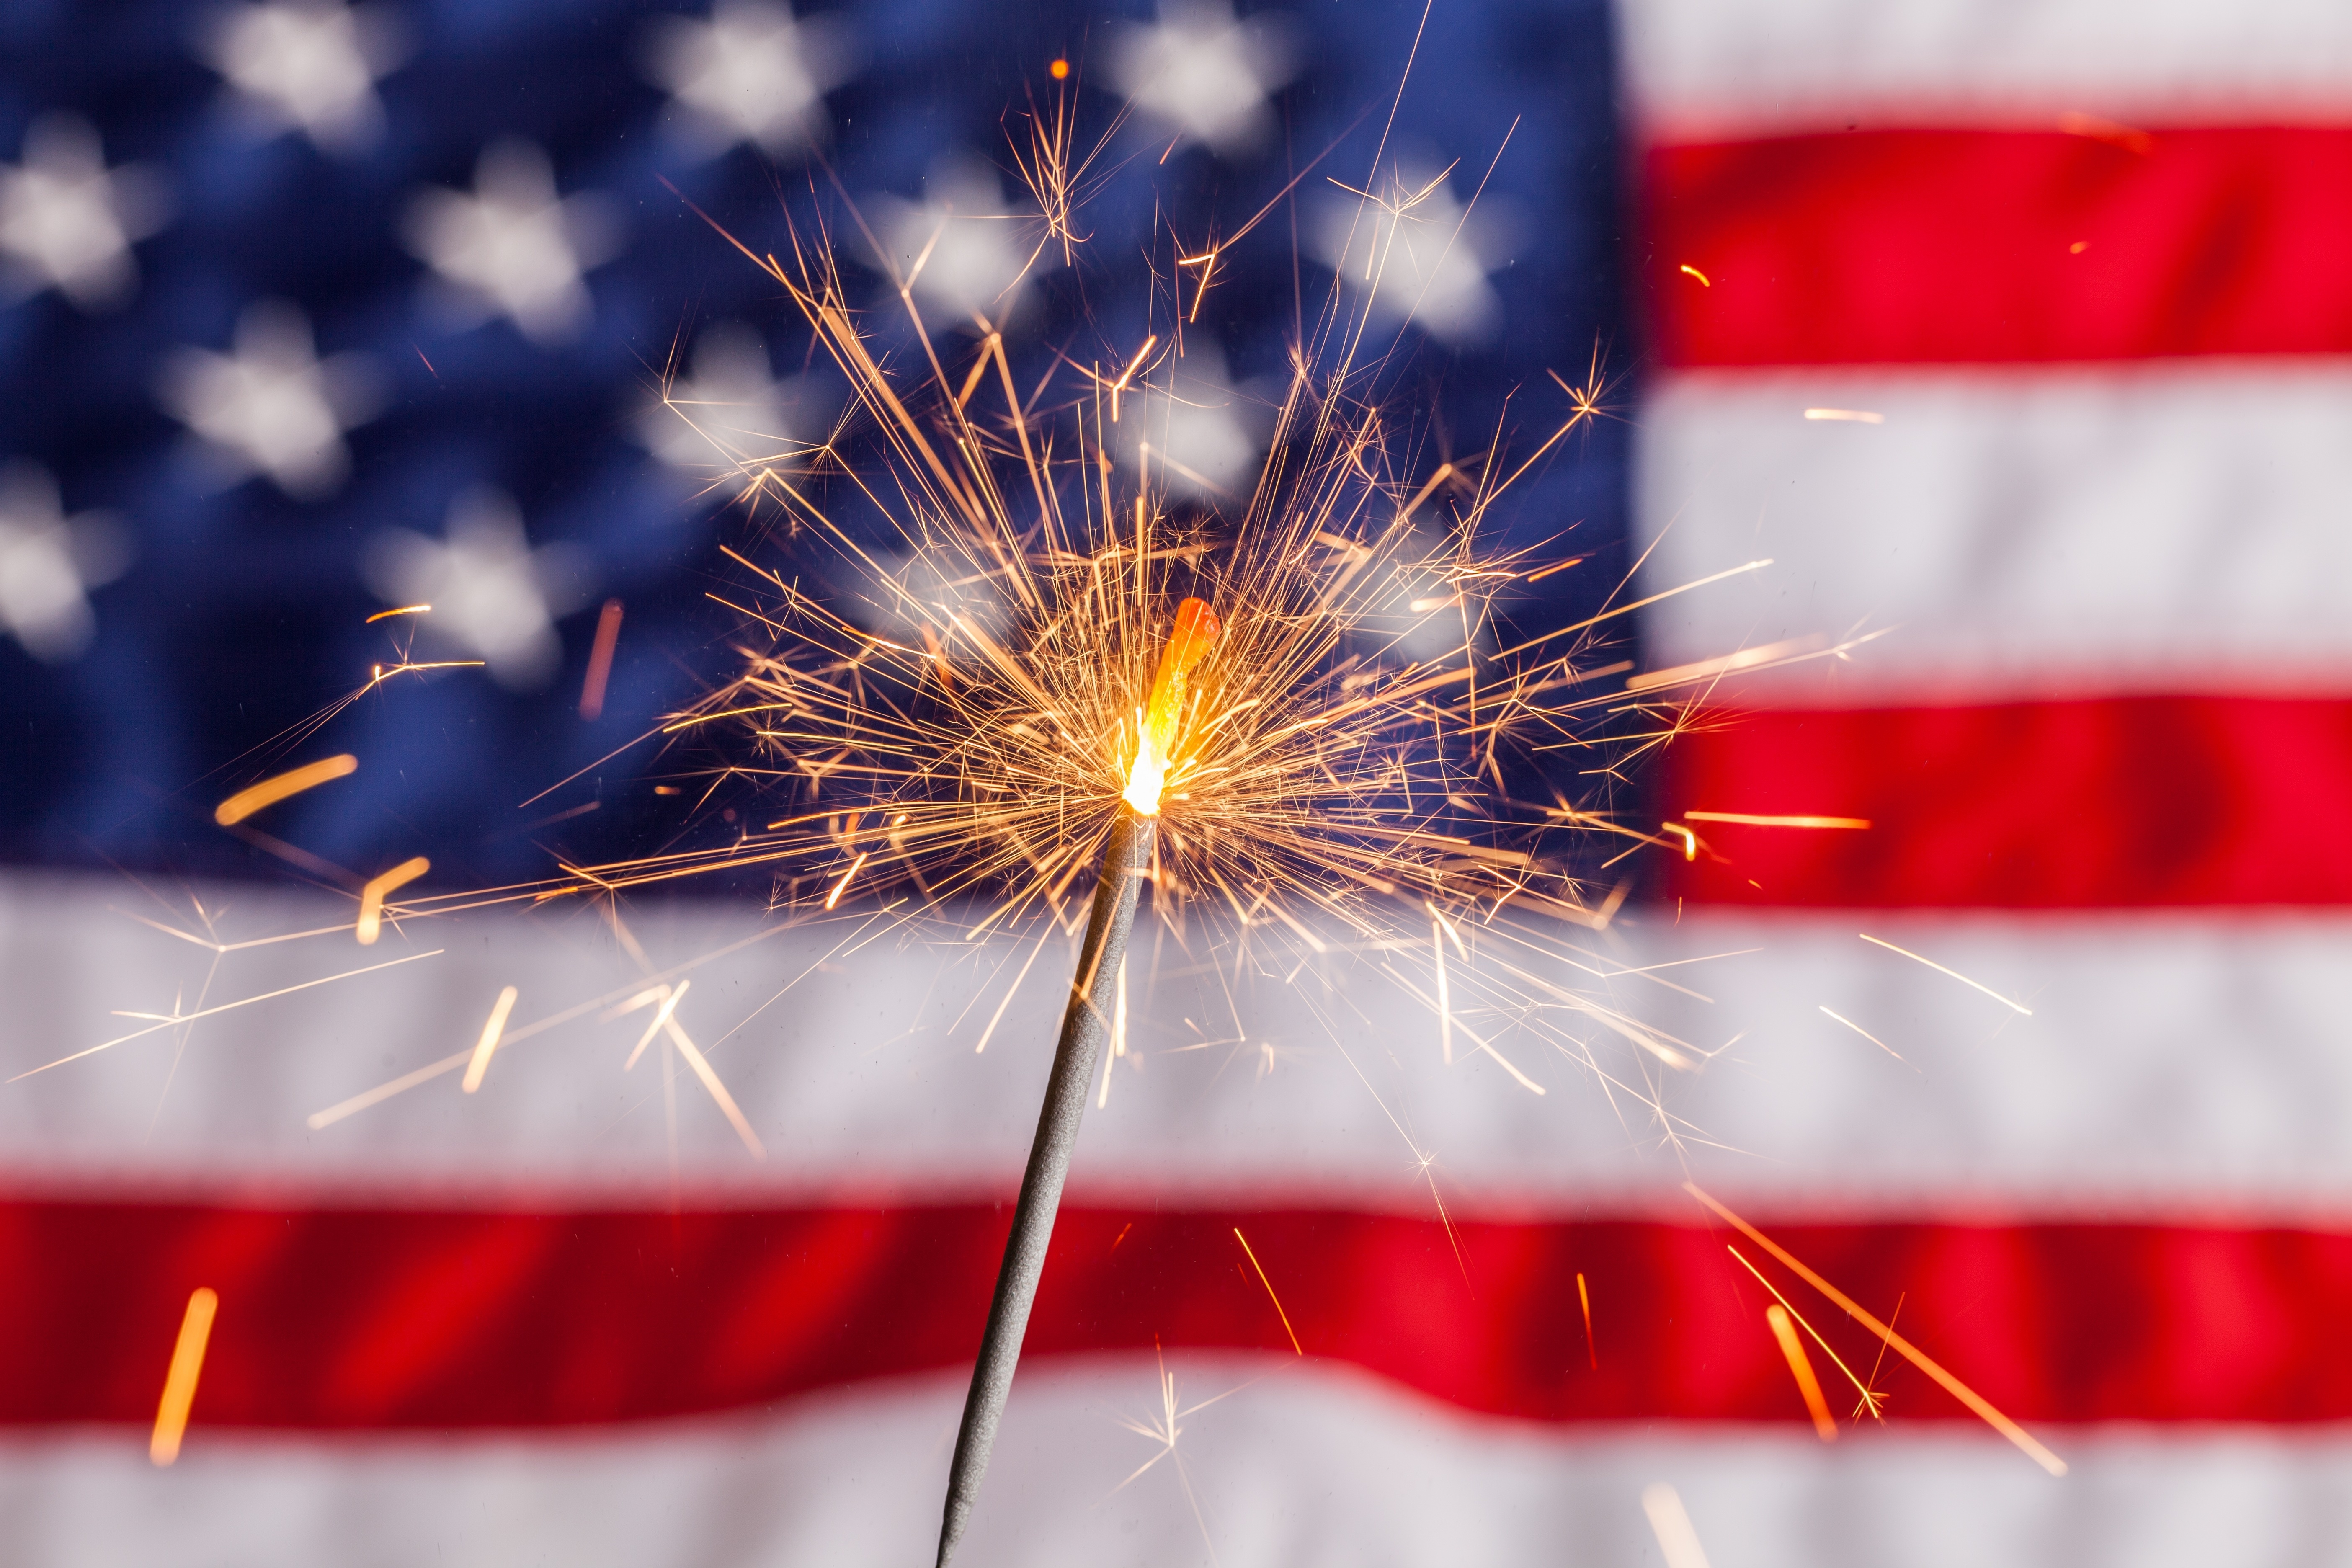 blog image of a sparkler in front of an american flag; blog title: Enjoy A Safe and Fun Fourth of July at Your Apartment